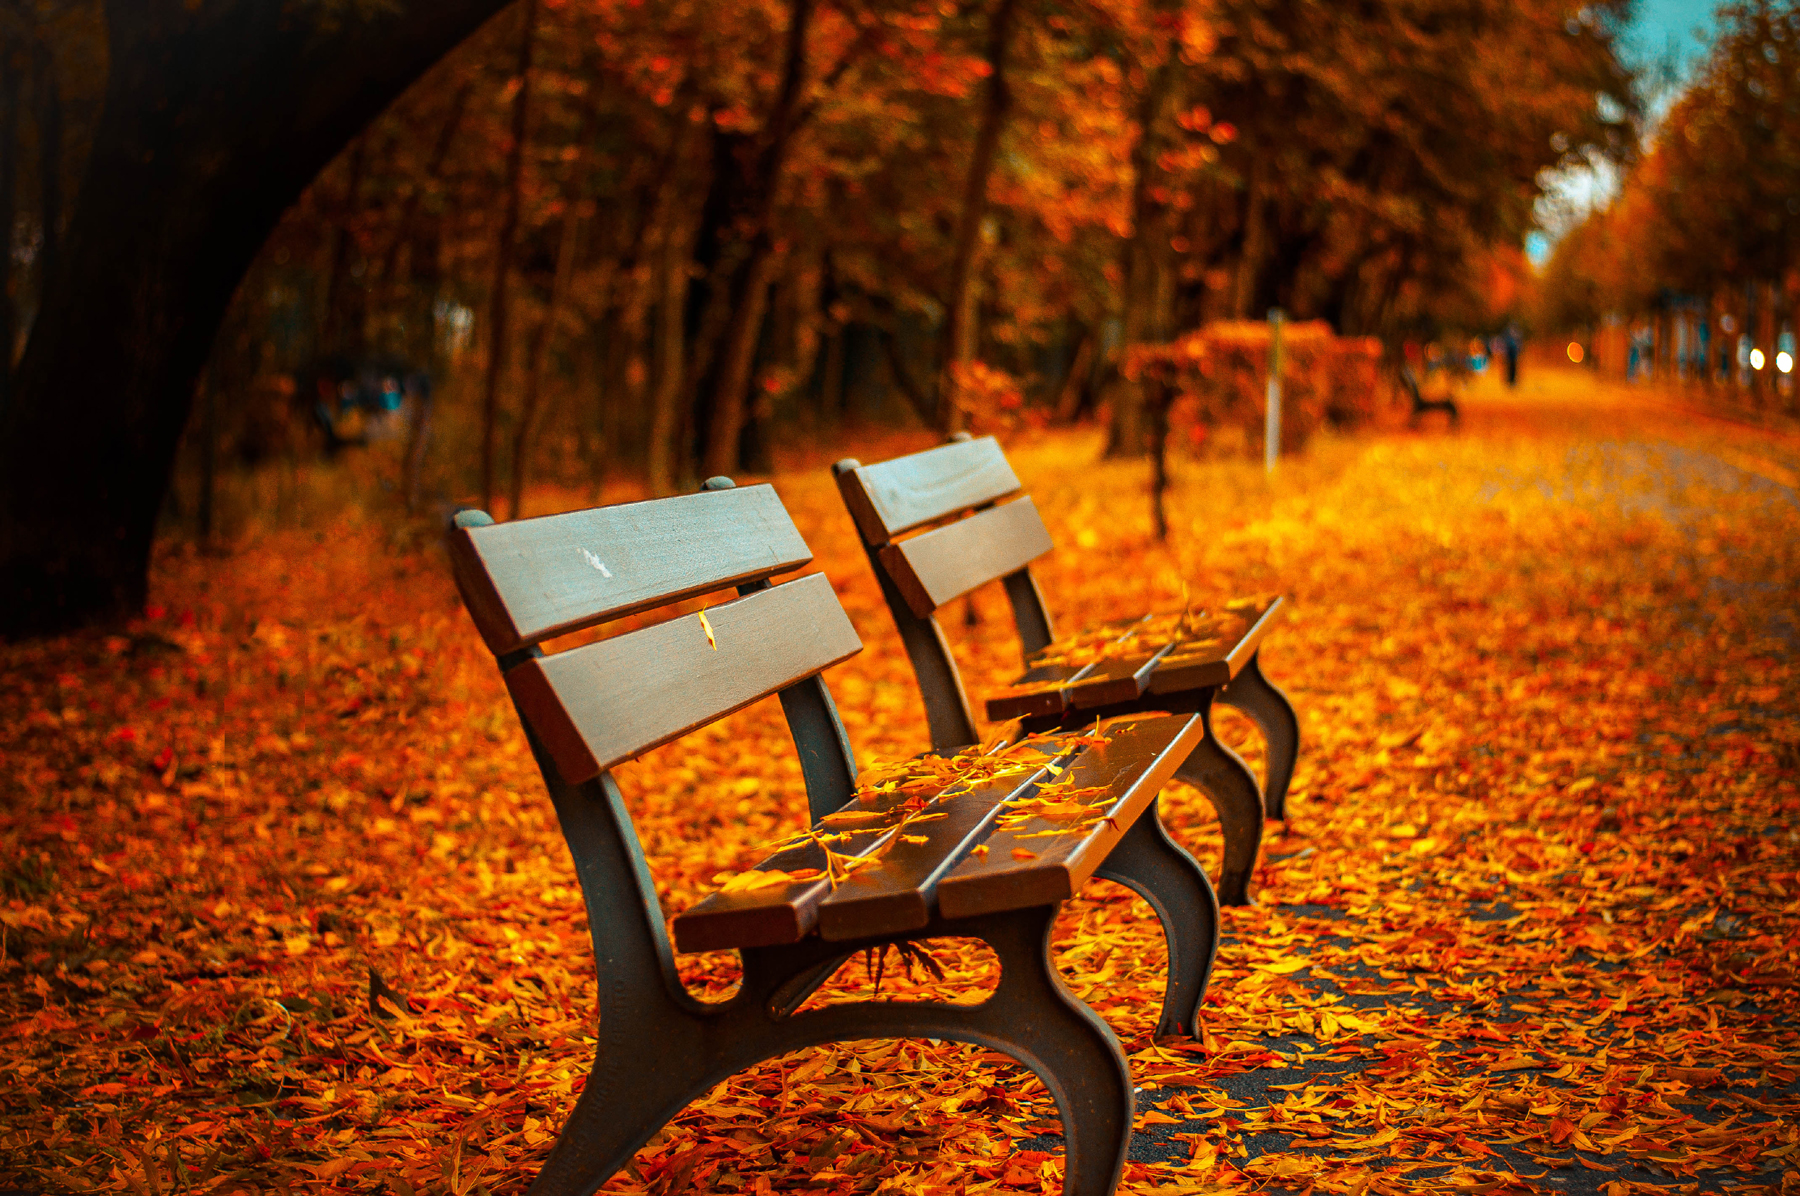 Park bench and floor in the fall leaves 52160